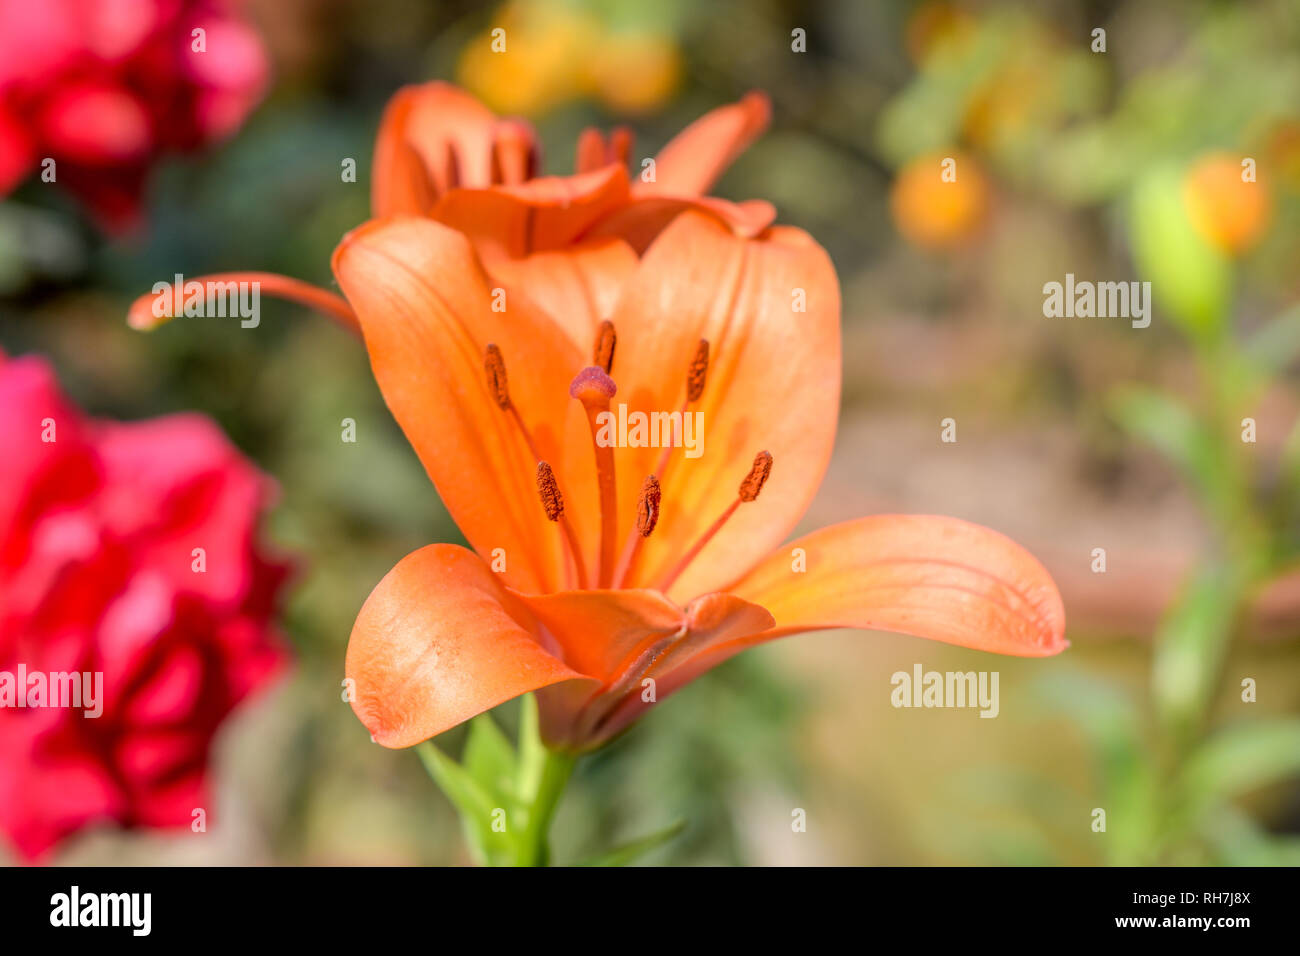 One Trumpet vine or trumpet creeper (Campsis radicans) flower, known as cow itch or hummingbird vine, in bloom with seeds and leaves, growing outdoors - Stock Image